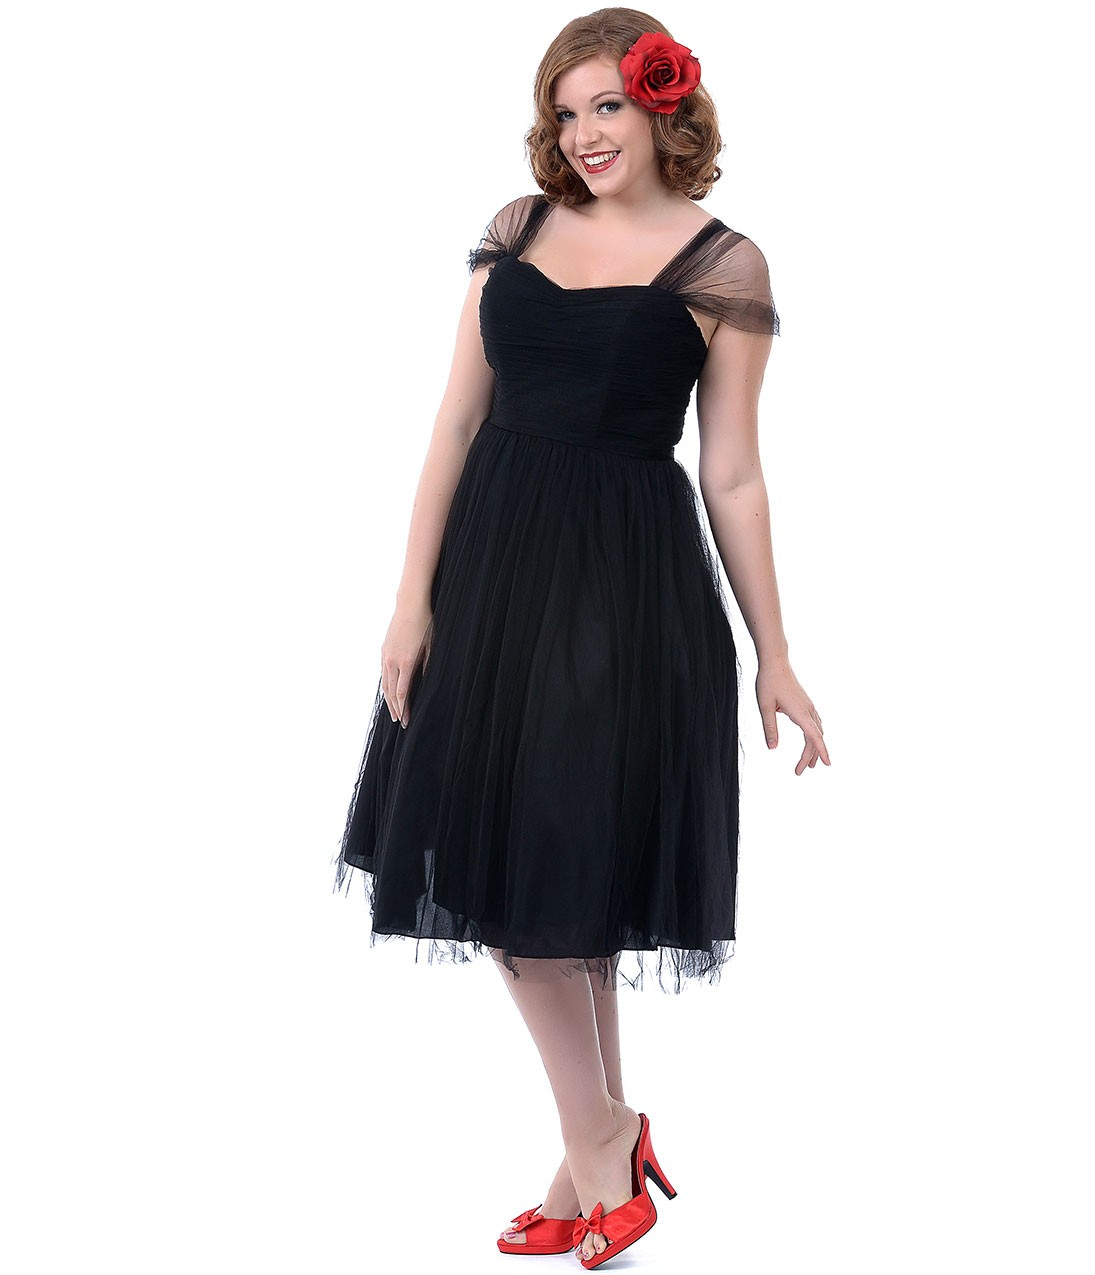 Plus Size Vintage Dresses | Dressed Up Girl